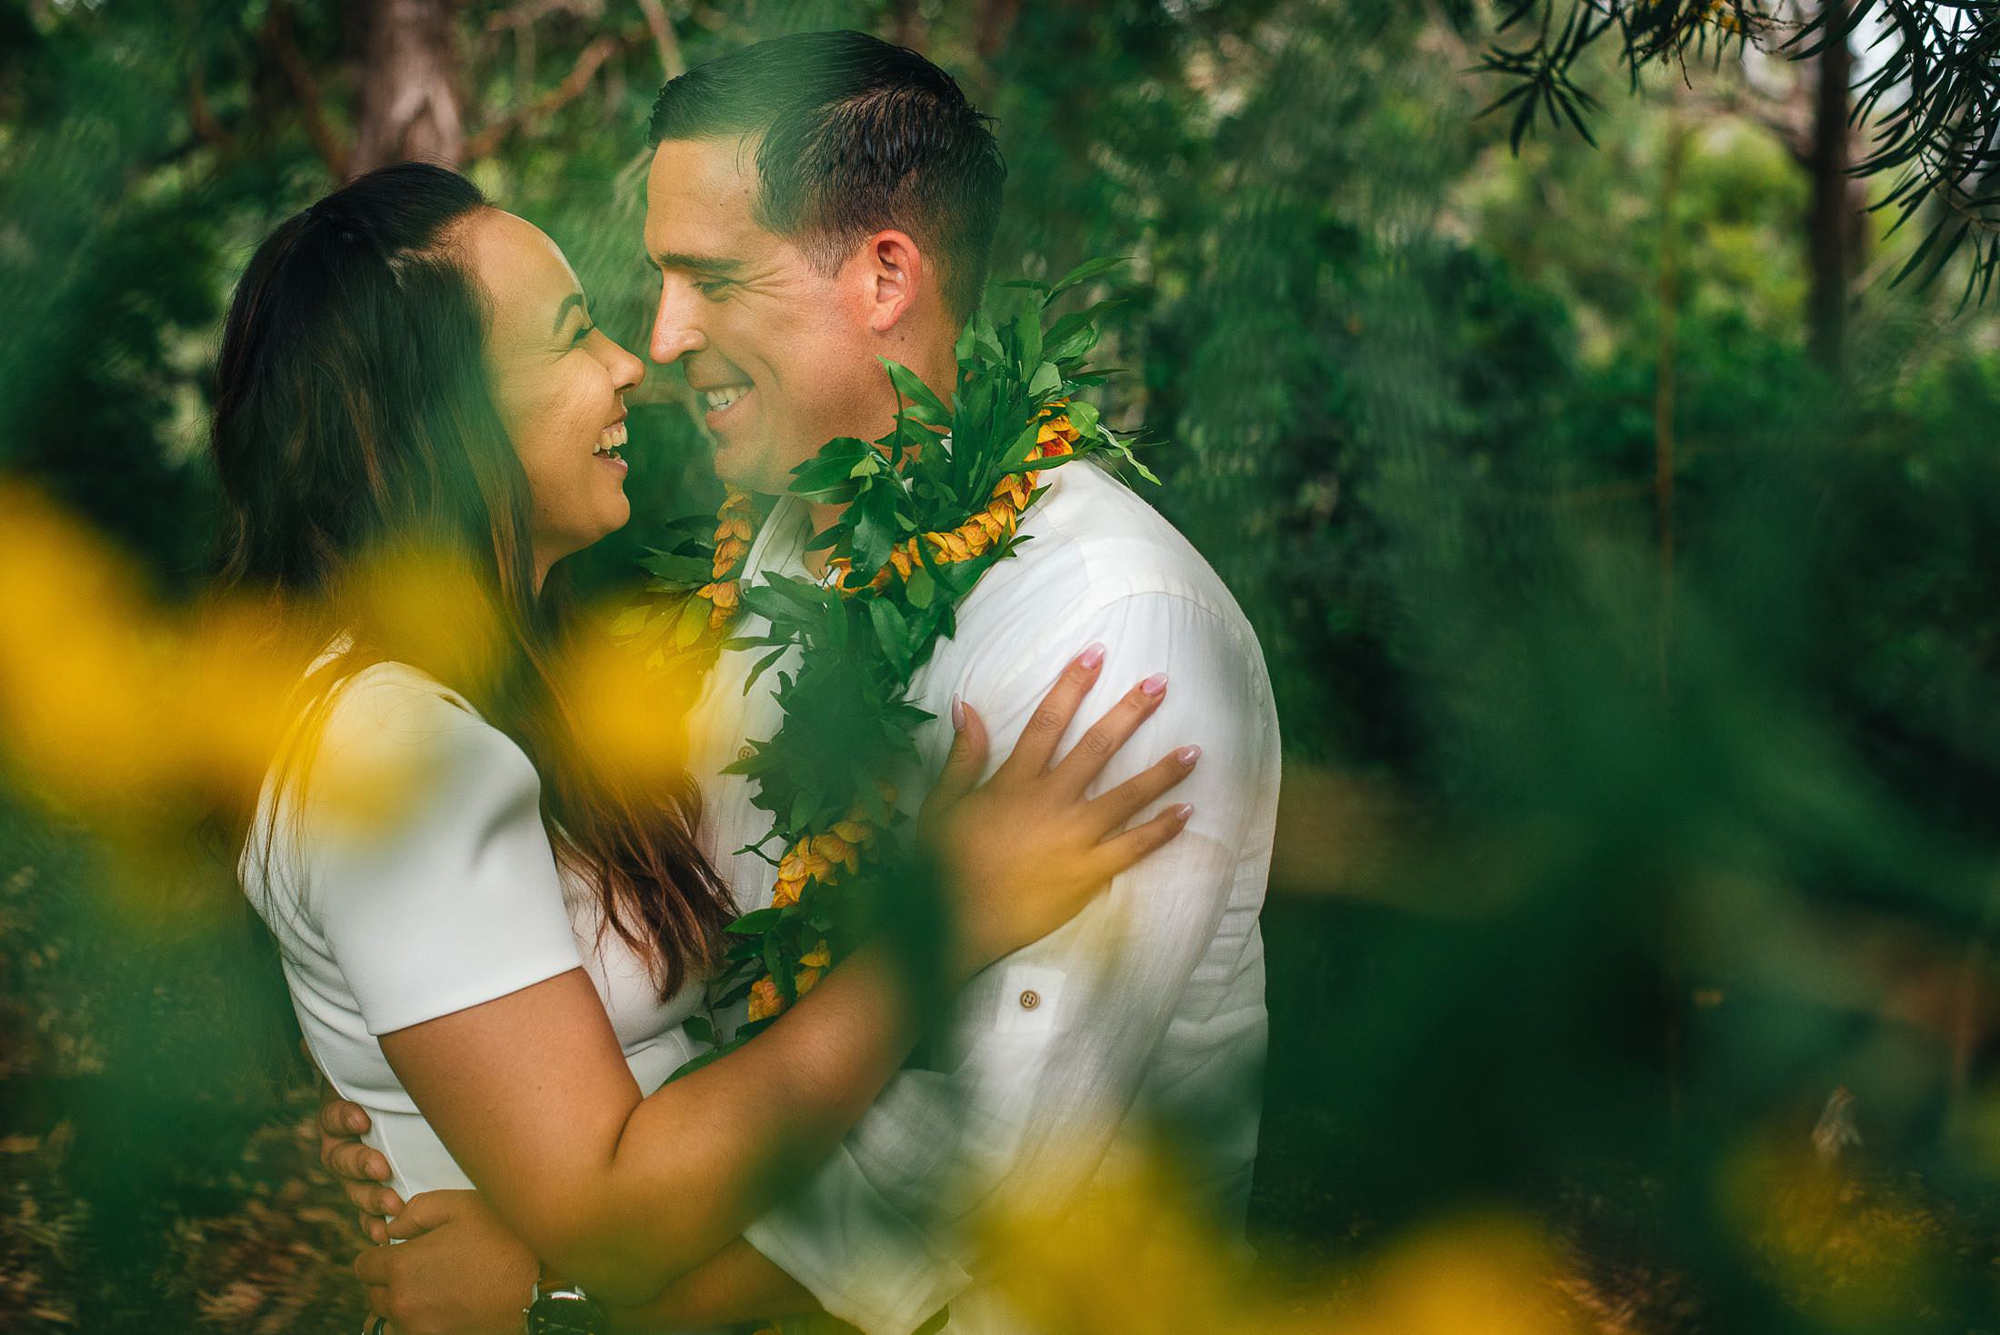 Andy Stenz creating love stories for over 10 years